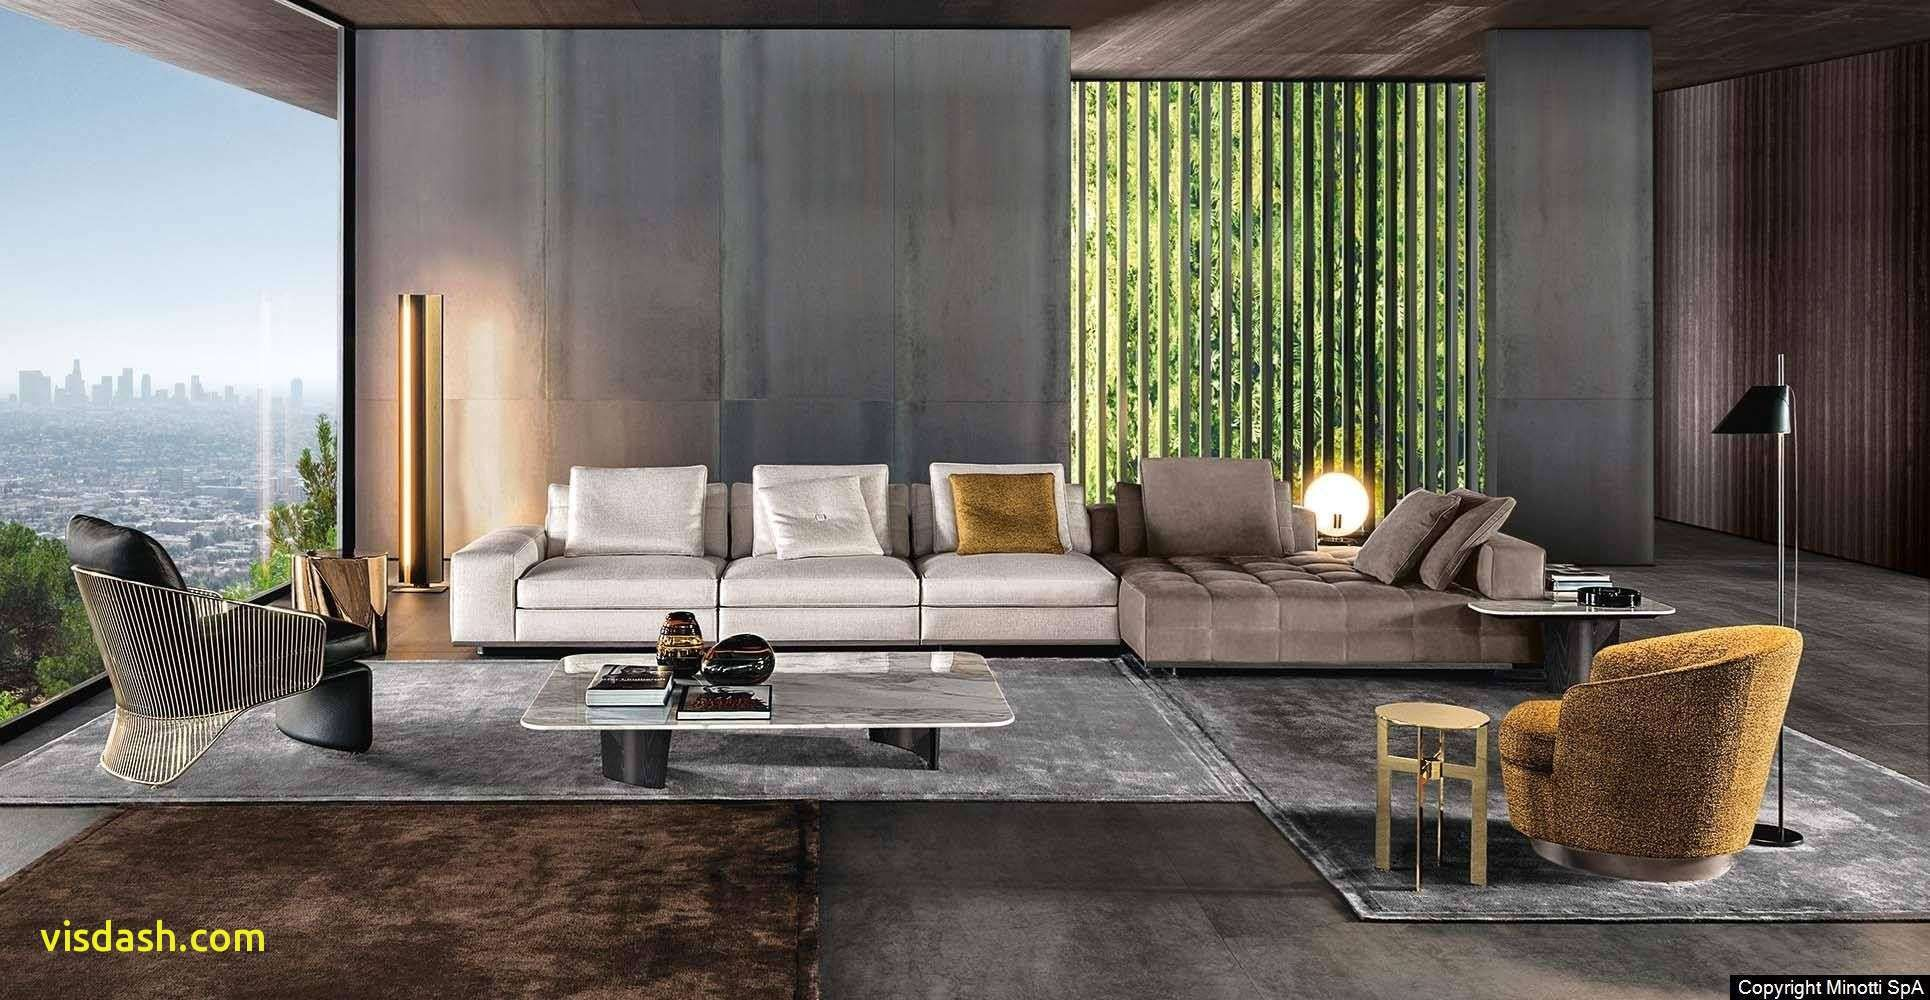 Bettsofa Outlet 27 Beste Von Minotti Sectional Sofa In 2019 Sofa Pinterest